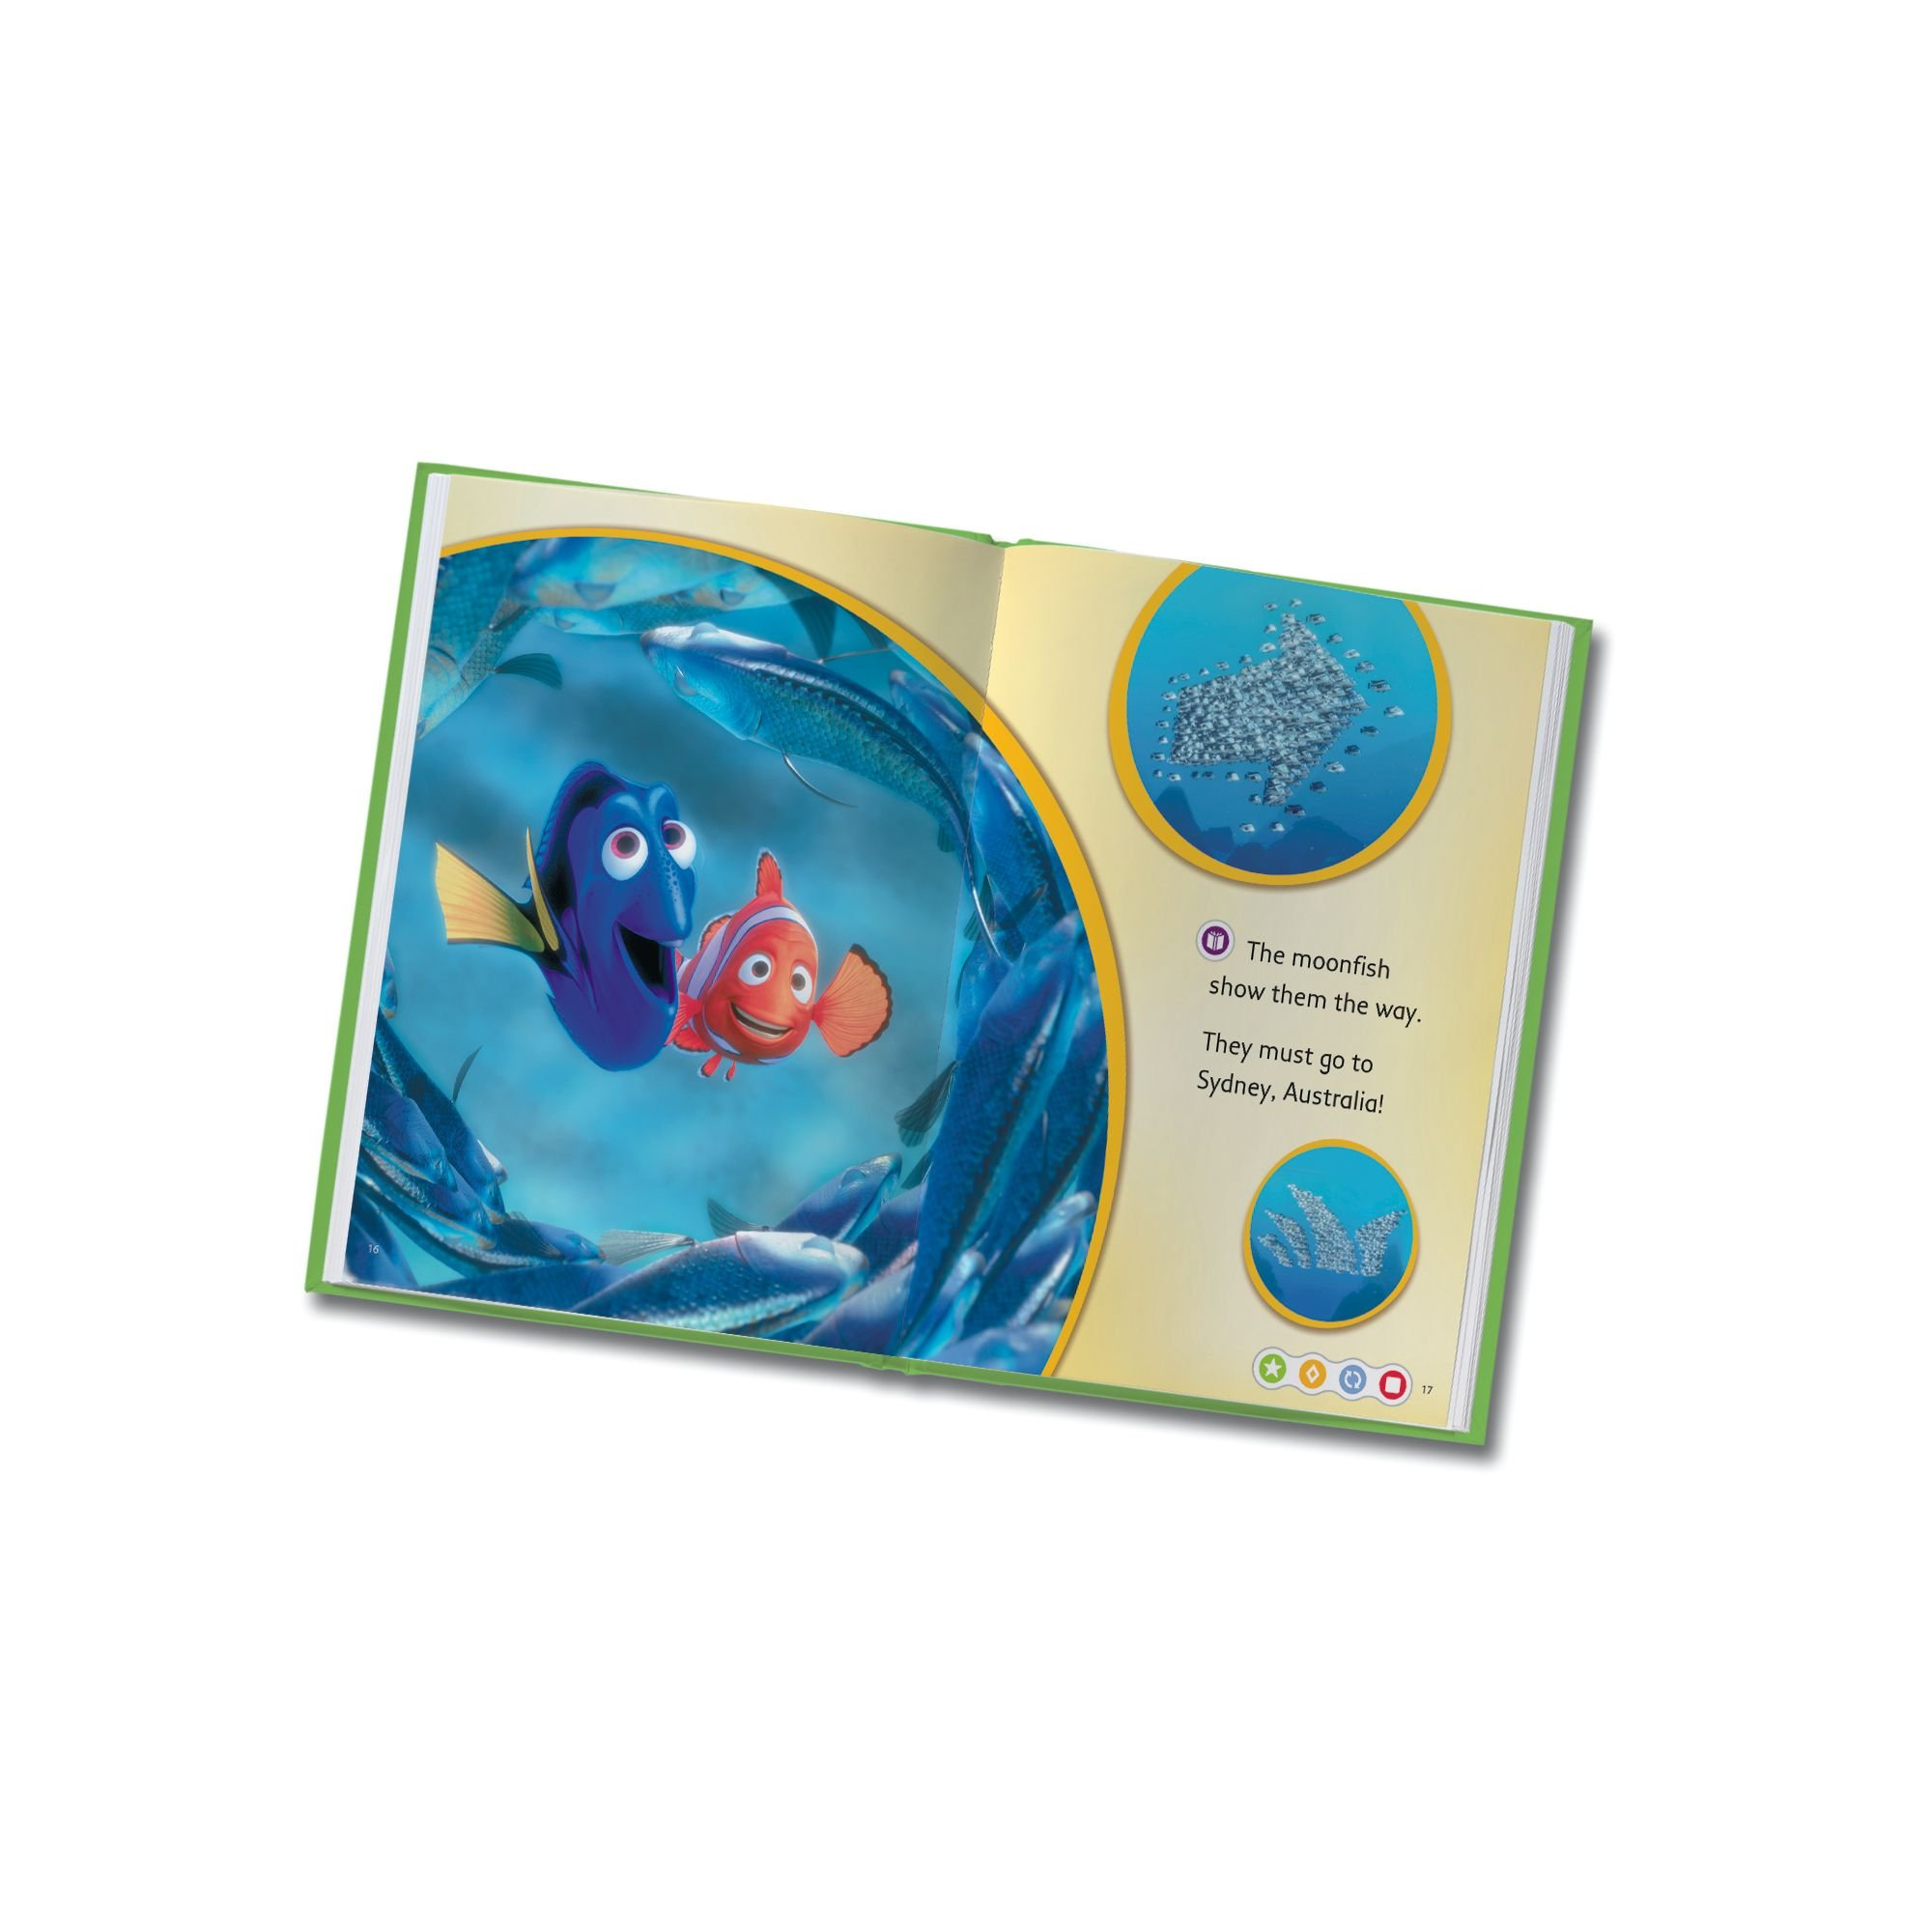 LeapFrog LeapReader Book: Disney·Pixar Finding Nemo, Lost and Found (works with Tag) by LeapFrog (Image #6)